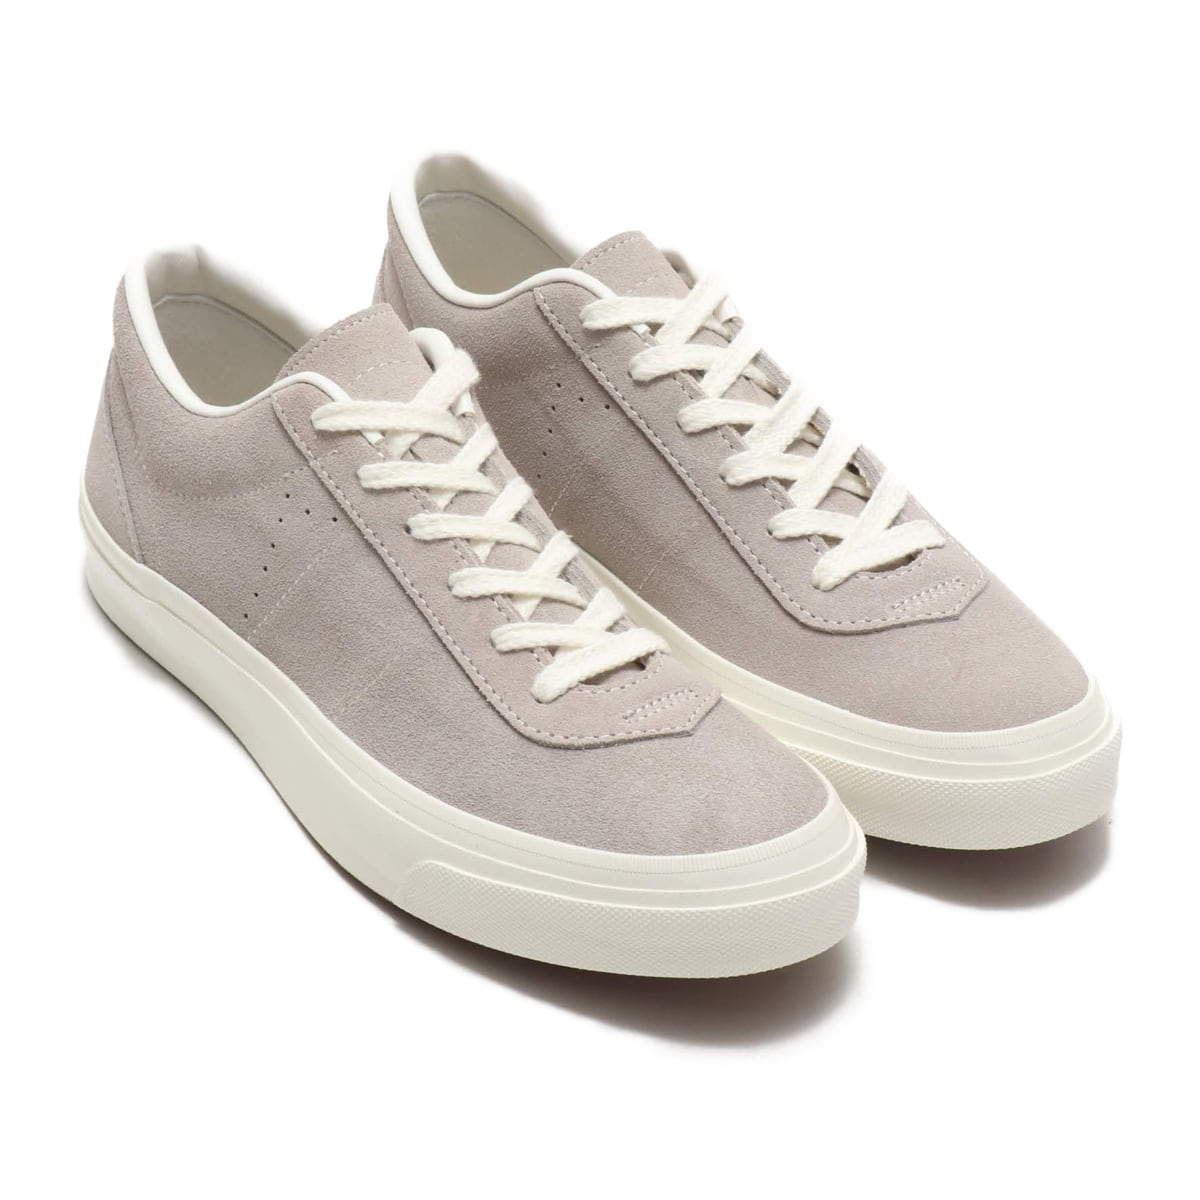 CONVERSE ONE STAR J VTG HS SUEDE NATURAL 18FA-S_photo_large